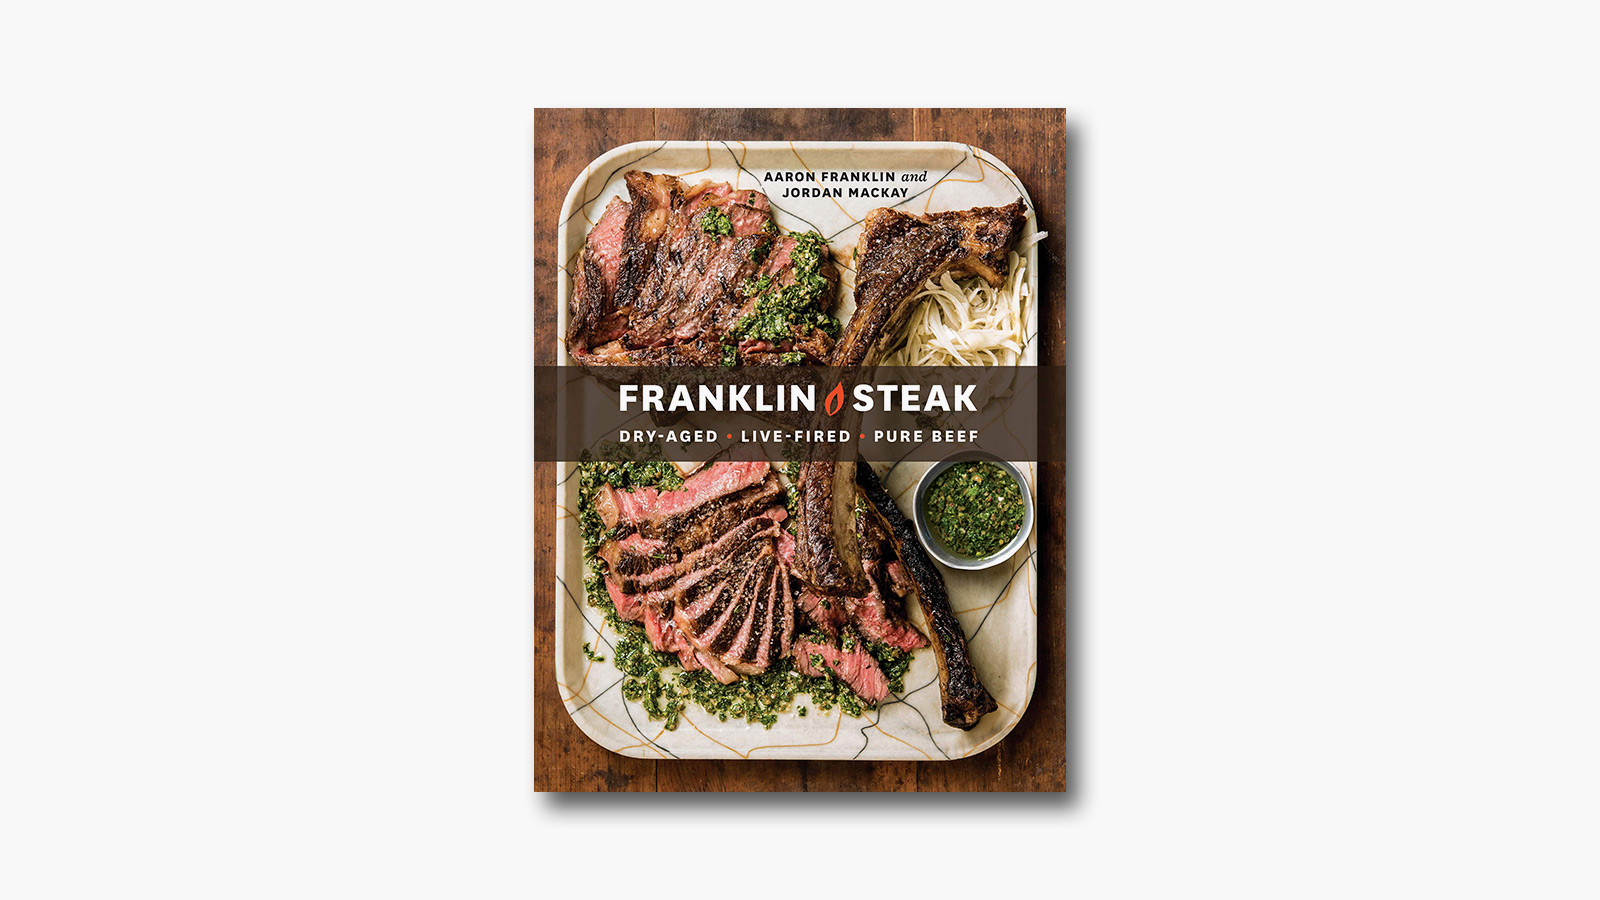 'Franklin Steak' by Aaron Franklin & Jordan Mackay